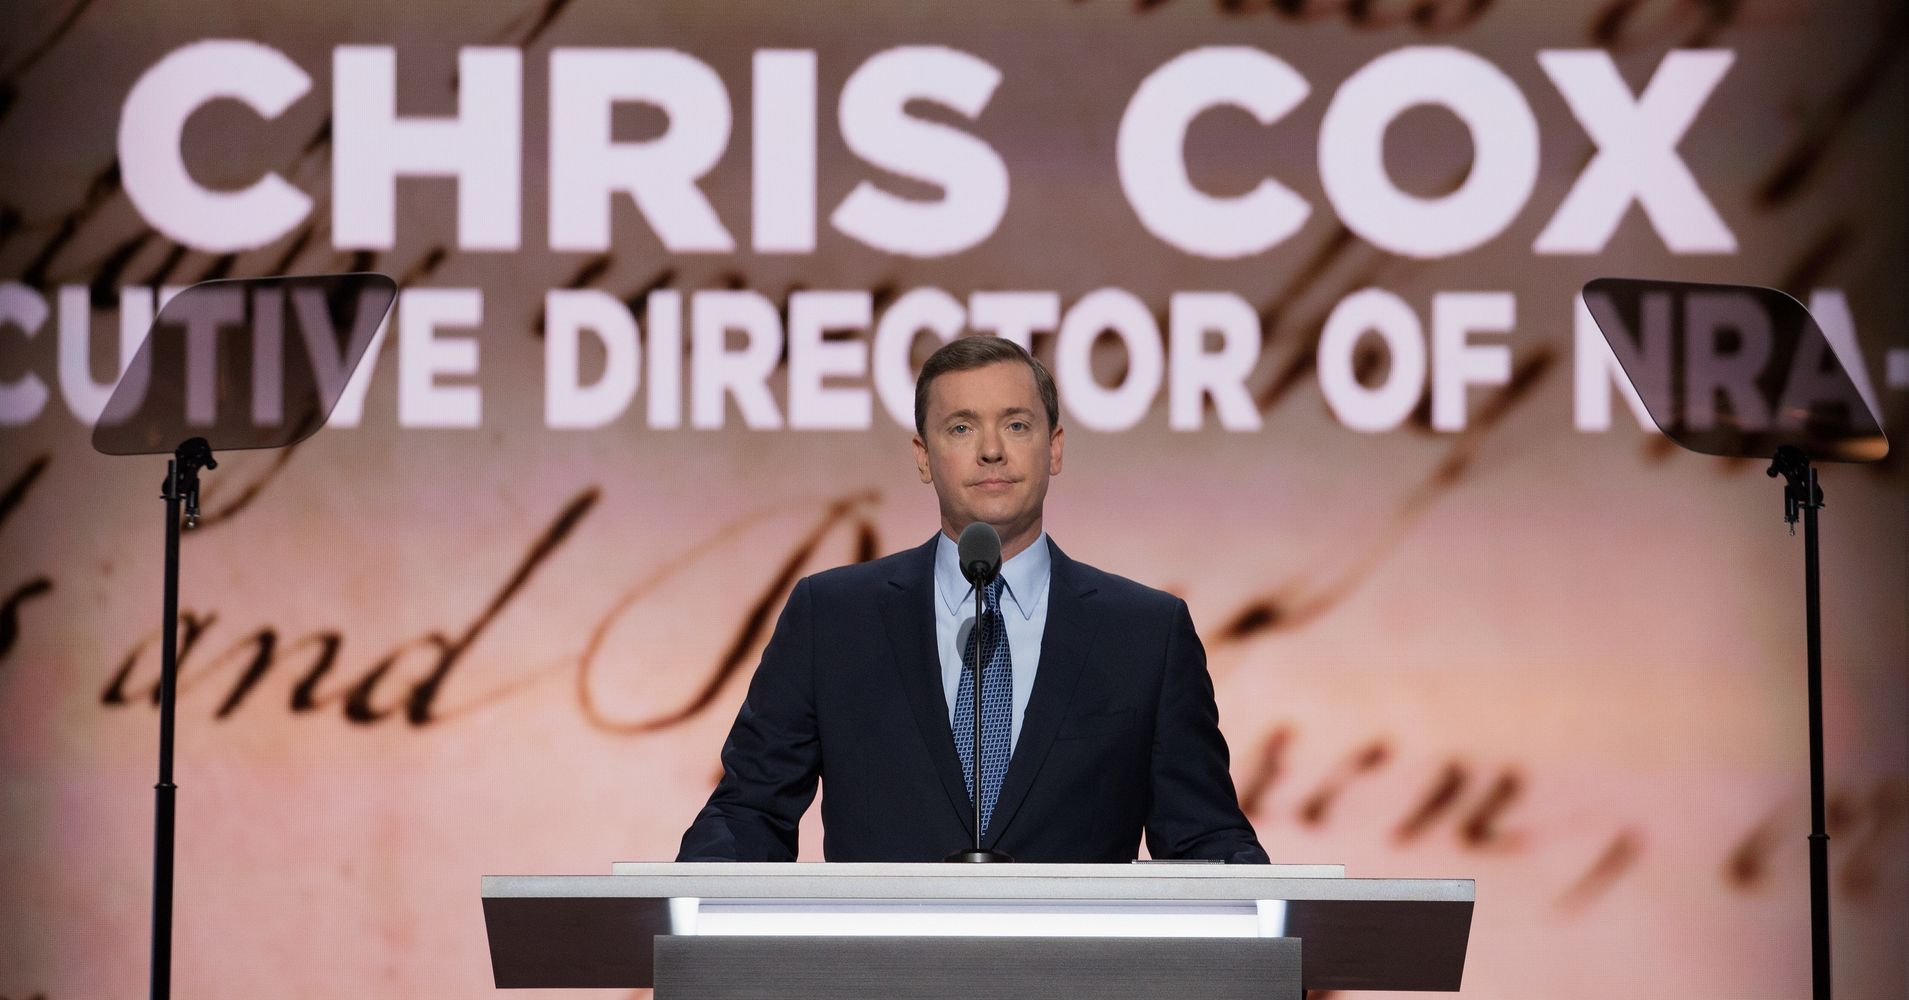 NRA's Chris Cox: 'We Don't Believe Bans Ever Worked On Anything'